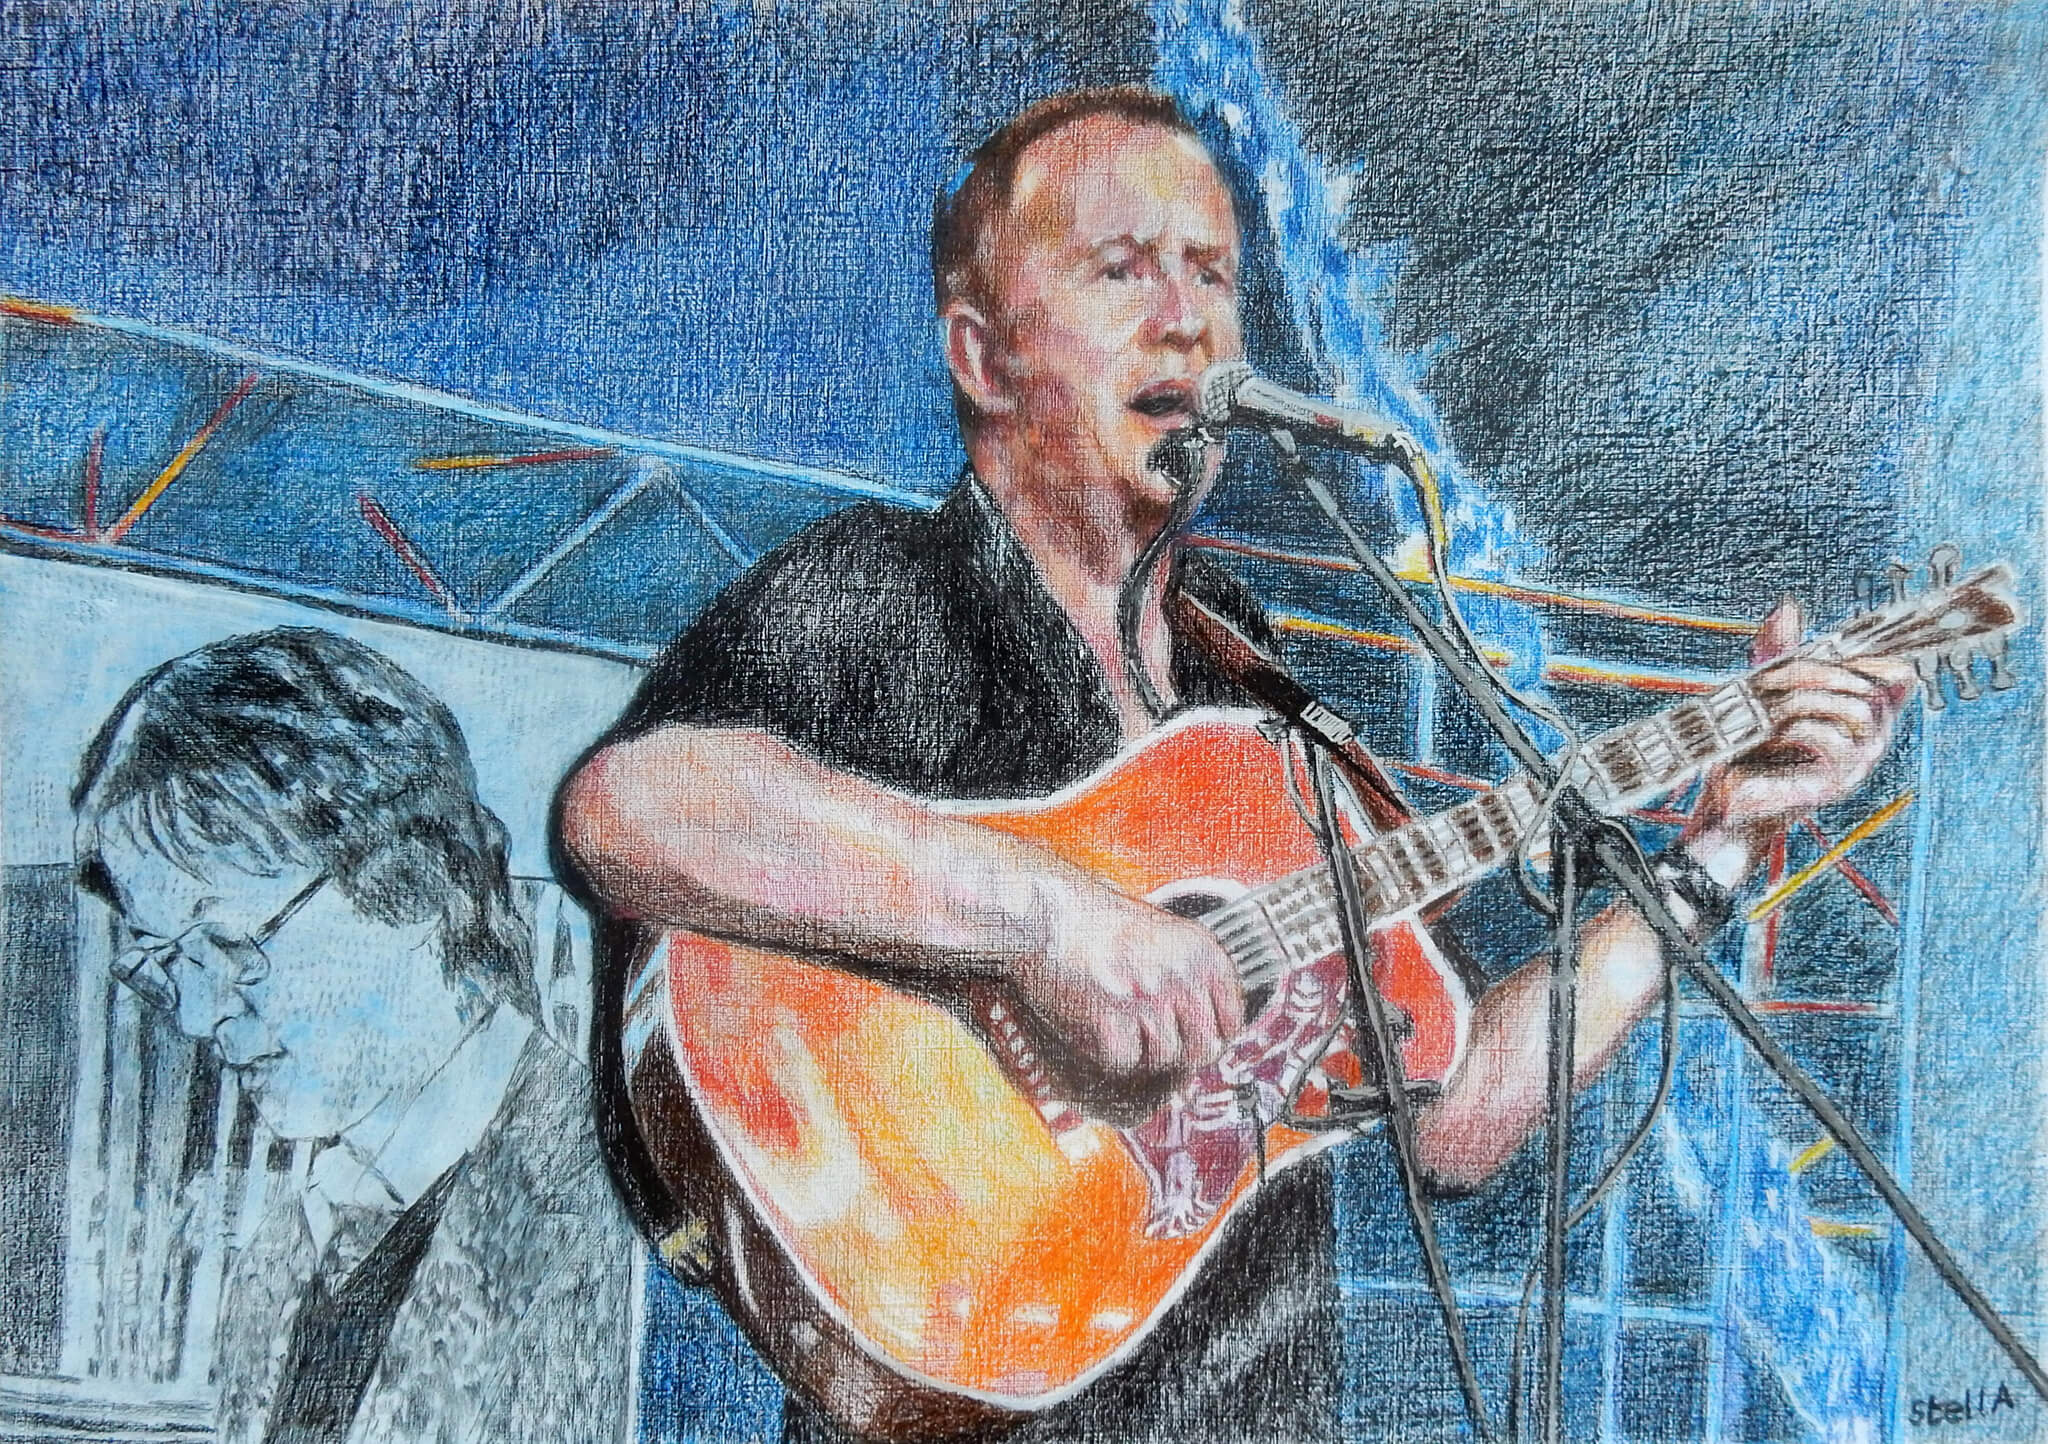 Pete Whitehead performing at retirement gig commissioned drawn portrait artwork by Stella Tooth.